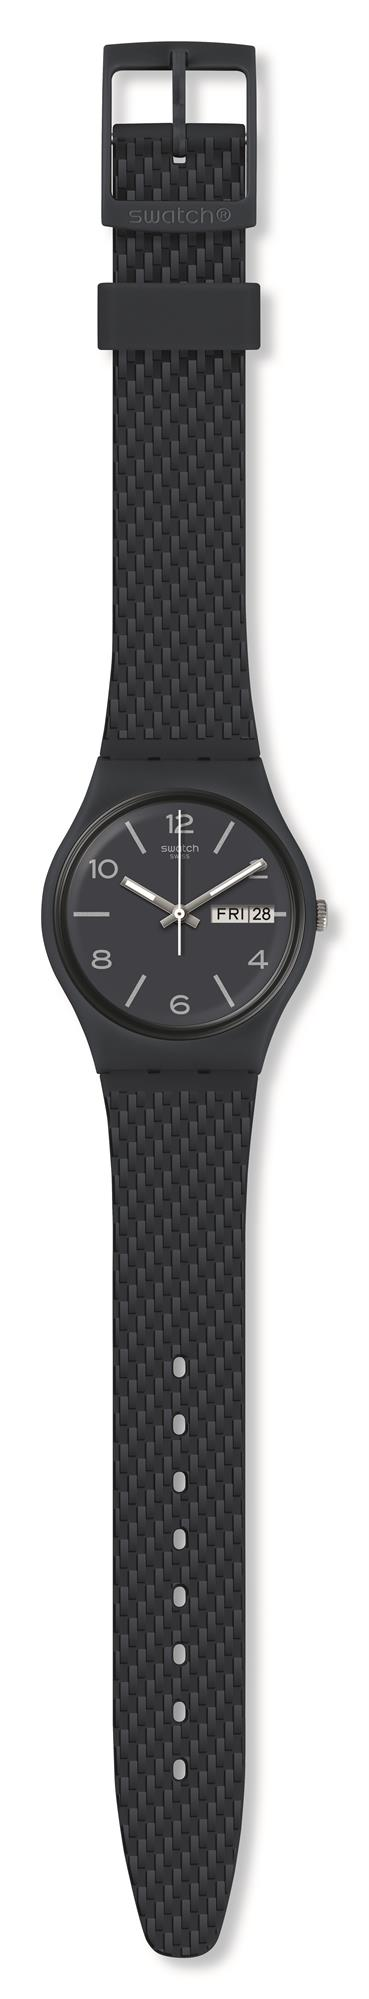 Swatch Bau Laserata Dark Blue Silicone Strap Quartz Day Date Men's Watch GN725 34mmThis Swatch Bau Laserata Dark Blue Silicone Strap Quartz Day Date Men's Watch GN725 34mm has a sleek design with a silvery print. A dark blue dial is complimented by silver Arabic indexes and hands, which in turn are powered by a quartz movement. At the 12 o'clock position is the ever present Swatch logo with a simplistic day and date window at the 3 o'clock position. Surrounding the dial is a plastic case and glass ontop to increase the strudiness of the timepiece. Finally, a silicone strap can be fastened using a standard buckle.This watch has a water resistance of 30 metres, making it suitable for light splashes.Key Features:Bau CollectionLaserata ModelDark Blue Silicone StrapDark Blue Dial30m Water ResistantQuartz MovementDrak Blue Plastic CaseStandard BuckleDay Date WindowThe Family: BauThe Bau collection is inspired by the Bauhaus movement, a design genre that focuses on geometric shapes and primary colours. The collection refects those concerns and explores the possibilities of graphic design and colours while projecting a joyful, dynamic and very neat feel.The Brand: SwatchSwatch watches are globally-renowned for their trademark combination of quality Swiss watchmaking, pioneering use of plastic cases and straps, and eye-catching designs. There is a Swatch watch to suit every age, taste and lifestyle, with this variety and sense of difference ensuring that Swatch watches remain some of the most popular and sought after currently manufactured.